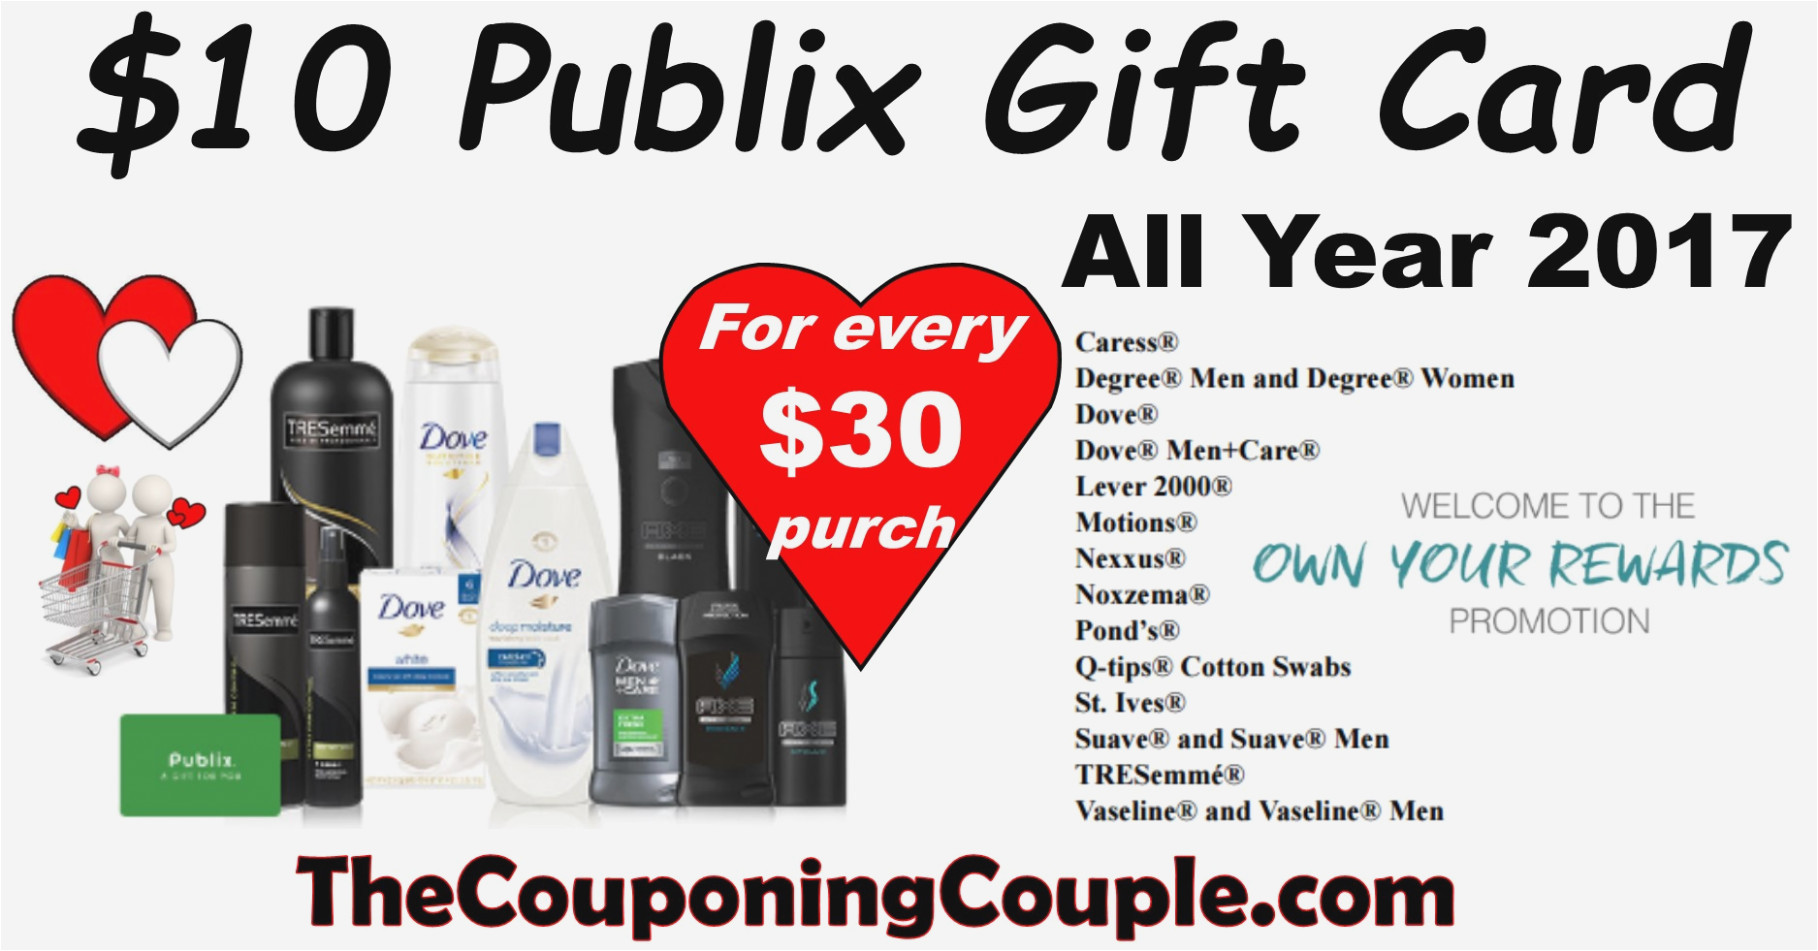 earn gift cards with publix own your rewards all year